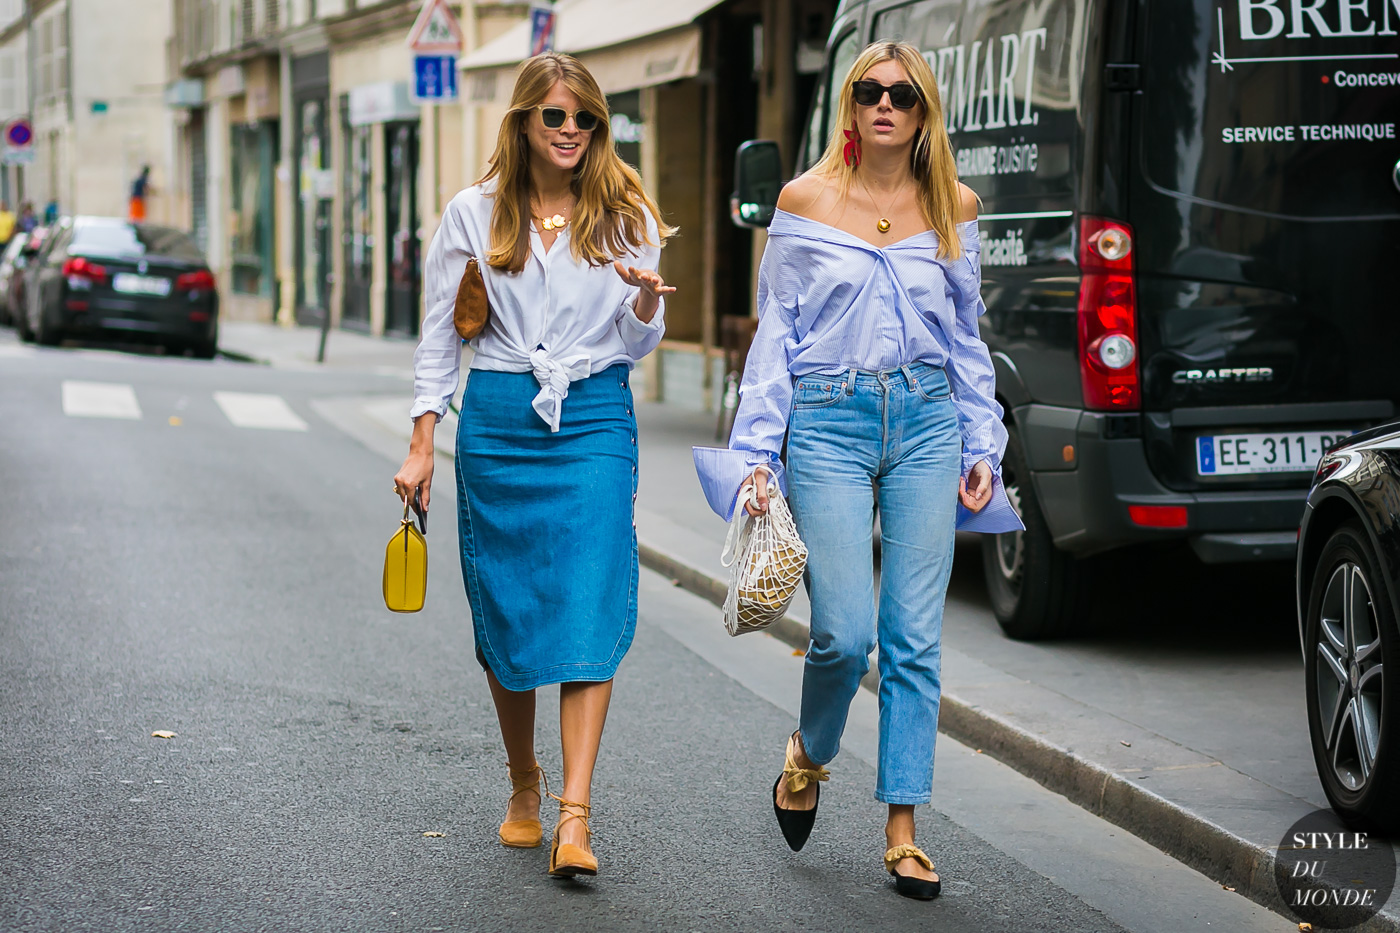 Monica Ainley and Camille Charriere by STYLEDUMONDE Street Style Fashion Photography0E2A5505